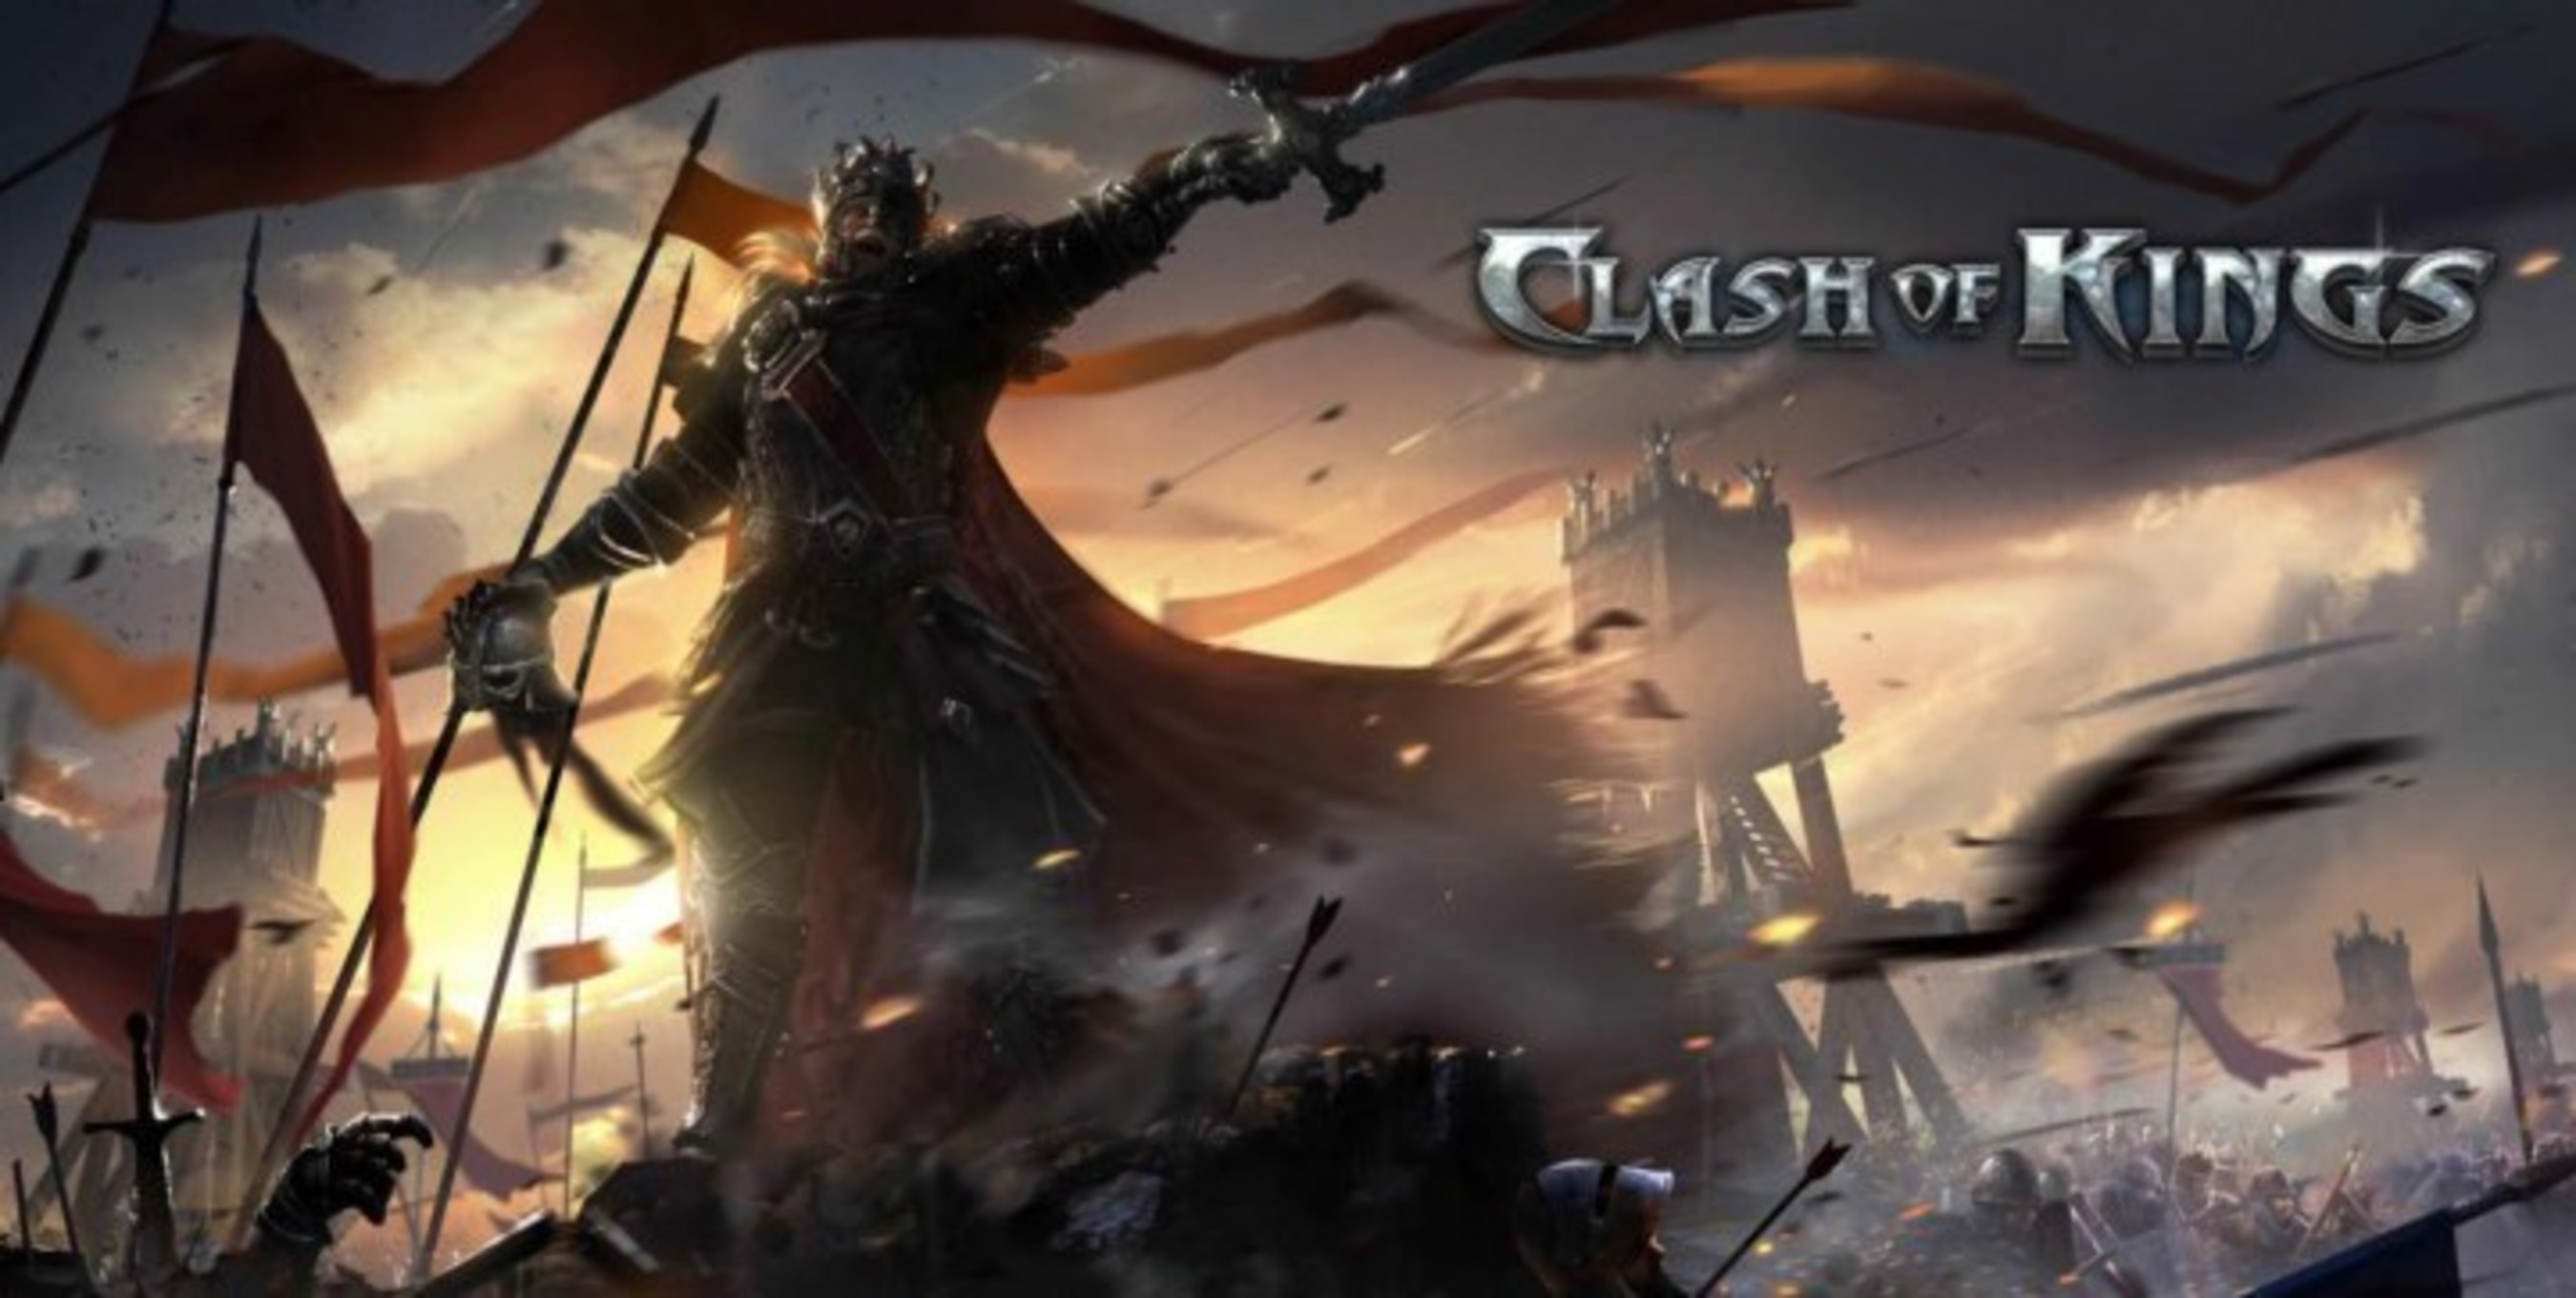 On Google Play, Clash of Kings is now showing in the 50,000,000 - 100,000,000 installs category